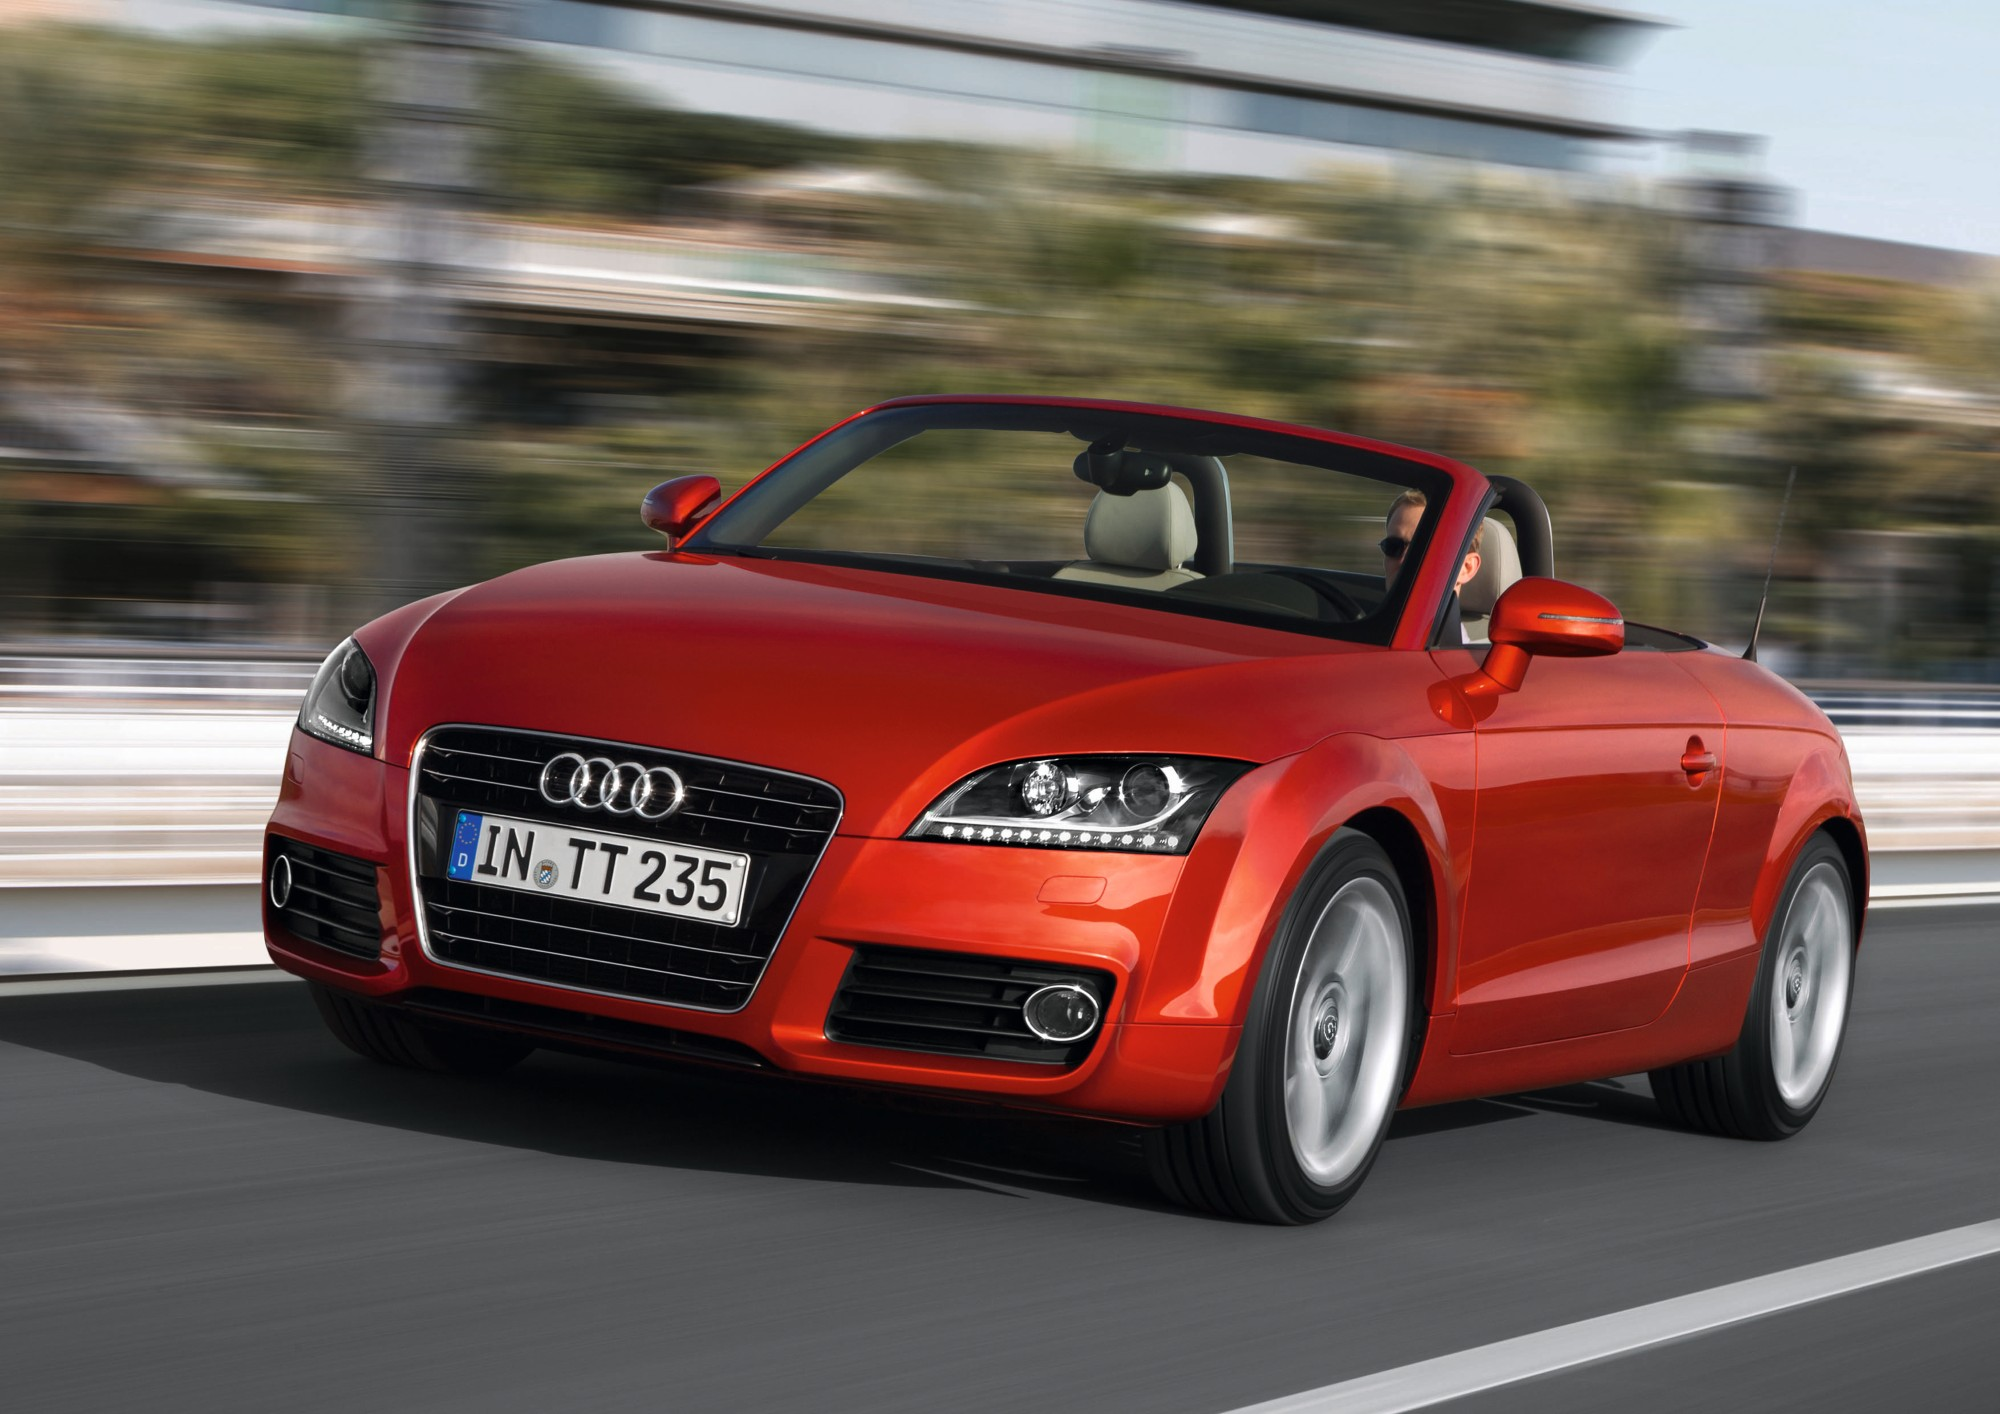 2013 Audi Tt Safety Review And Crash Test Ratings The